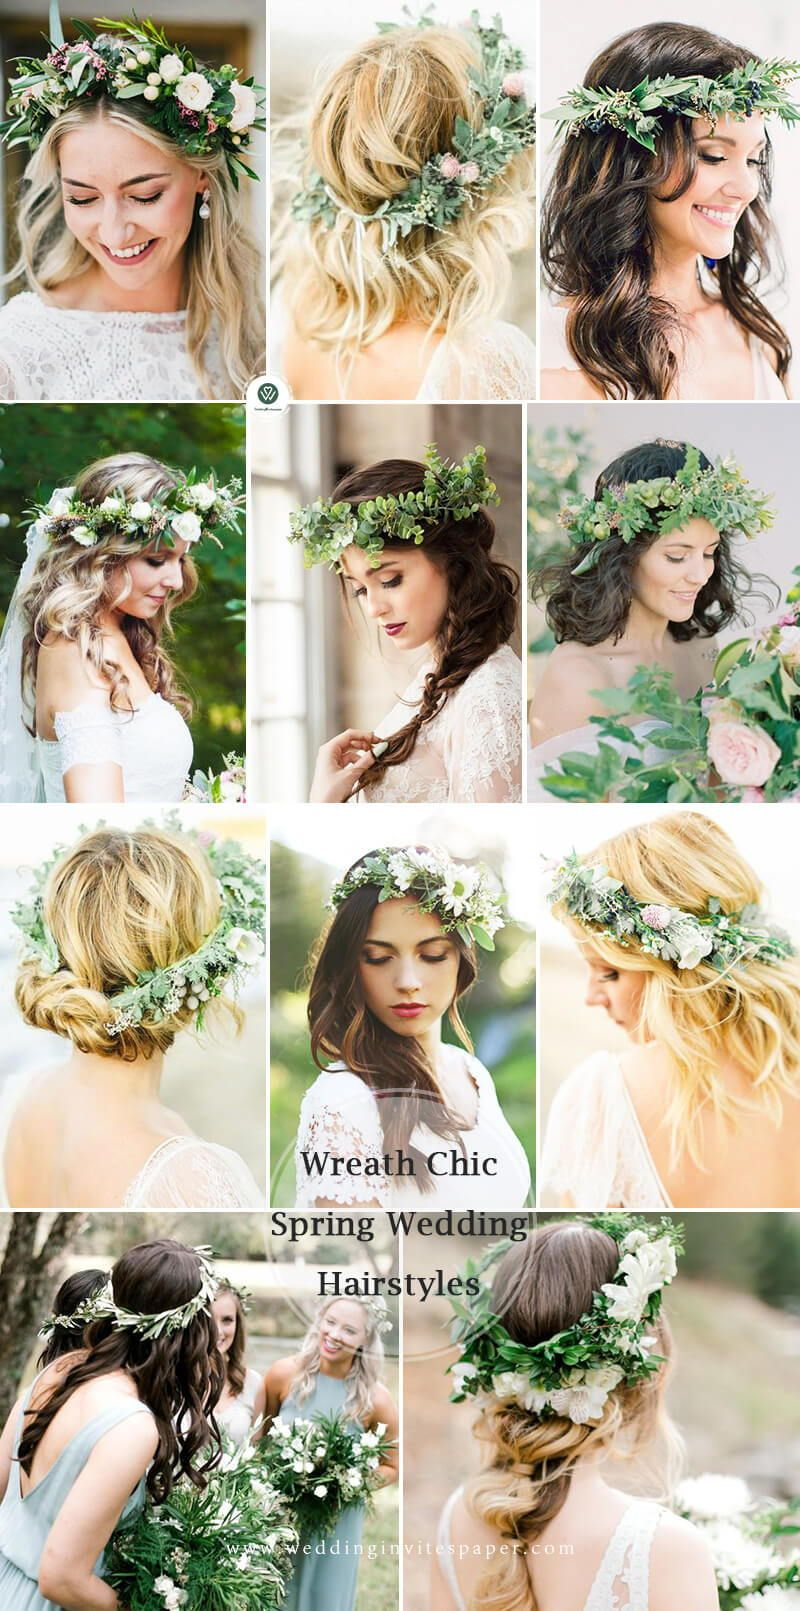 55 Glamorous Wedding Hairstyles For Spring Time Brides Wedding Hair Flower Crown Country Wedding Hairstyles Glamorous Wedding Hair